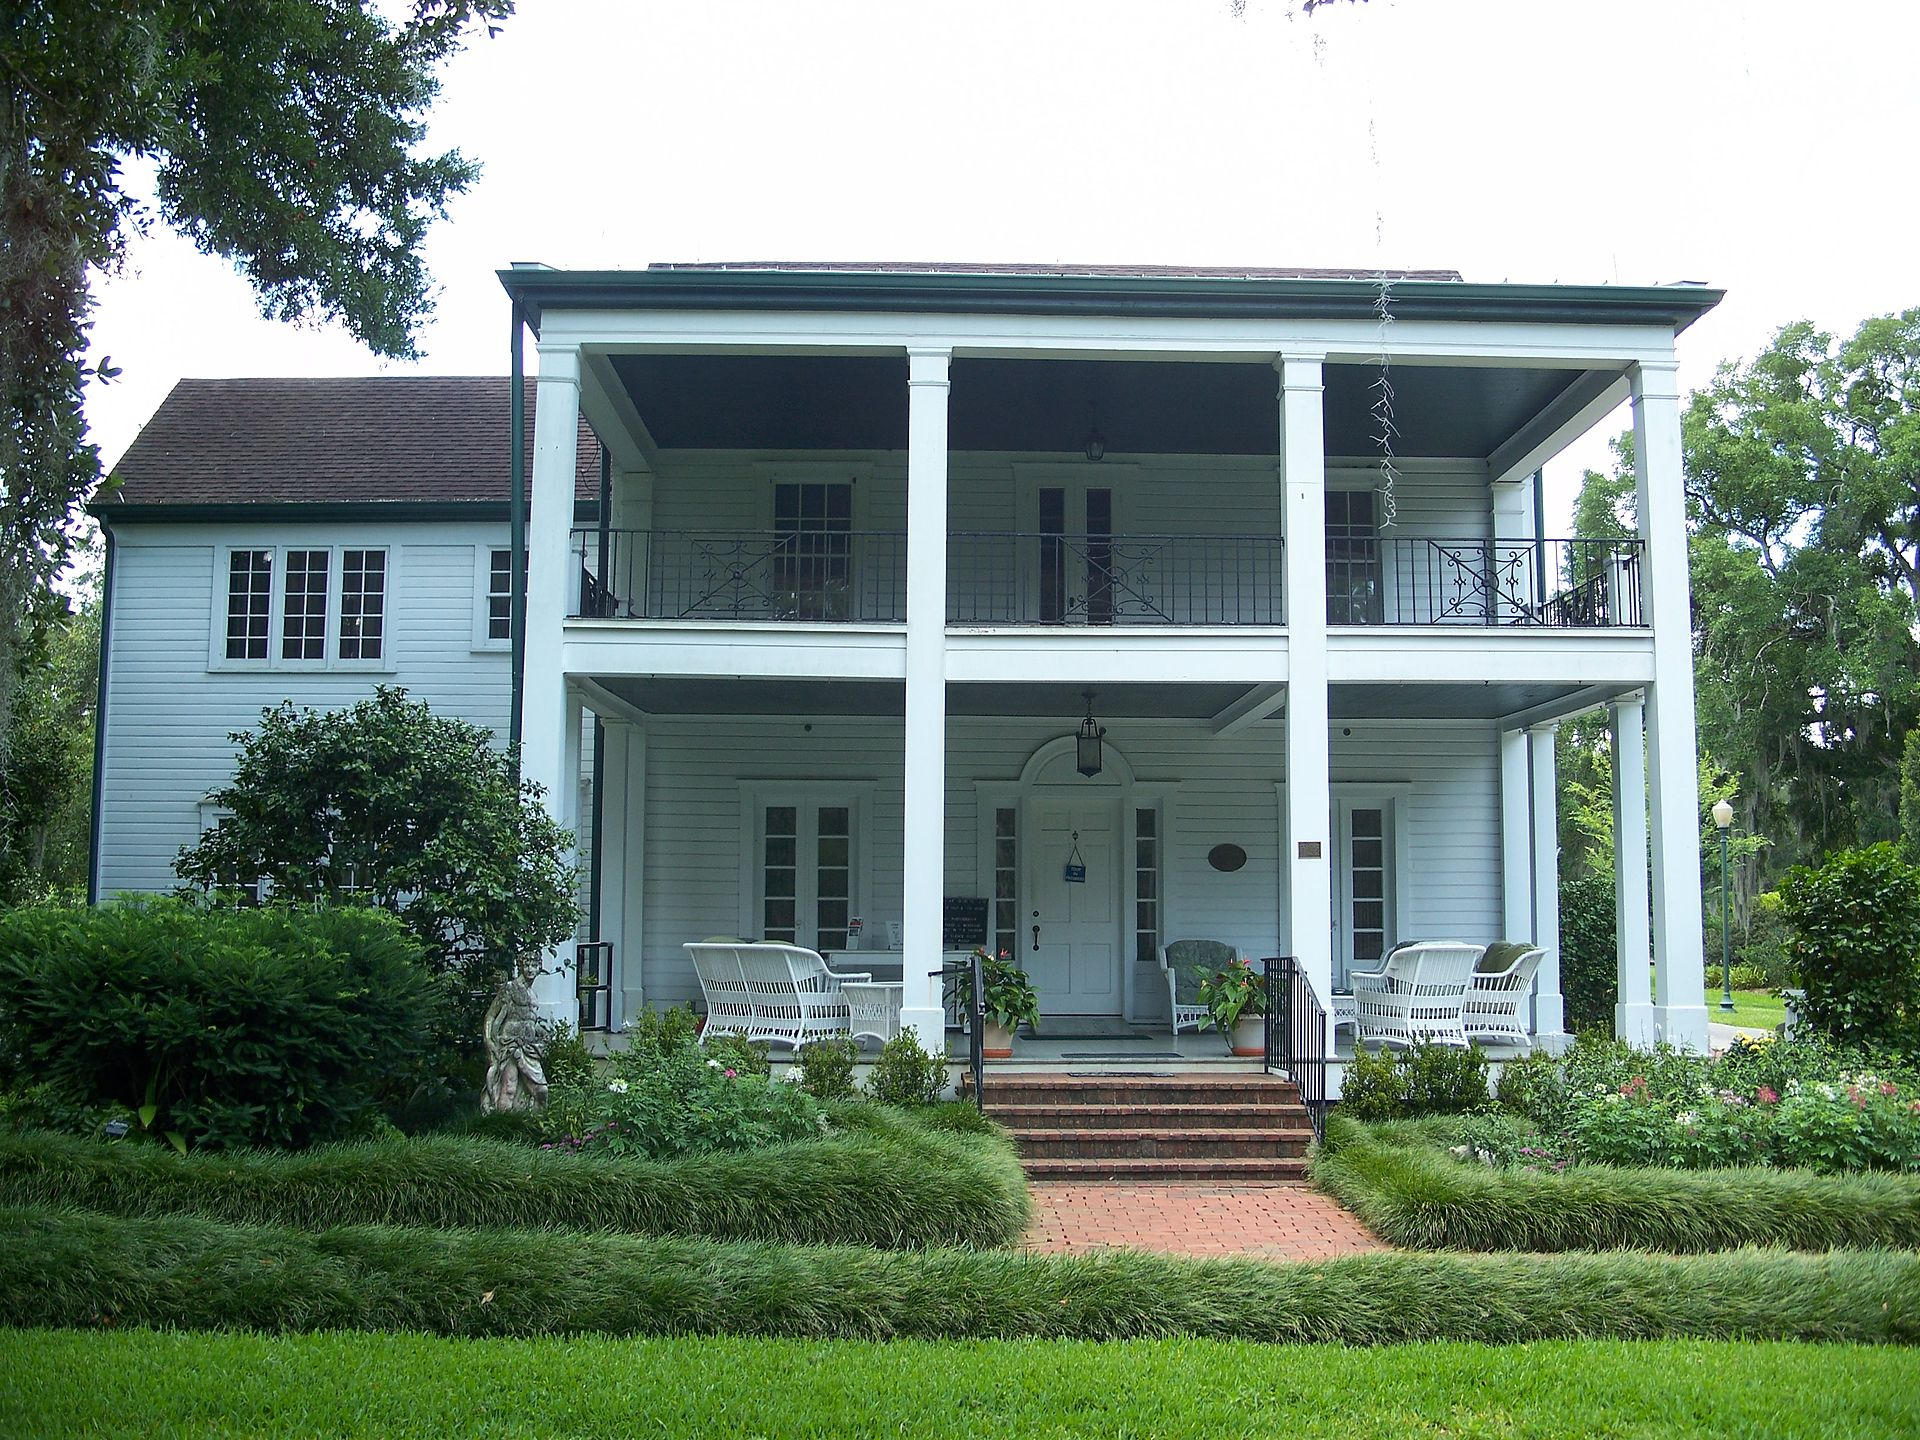 The Mizell-Leu House was first built in 1888 and was expanded significantly over the coming decades by subsequent owners. The building in the street view is the Welcome Center.